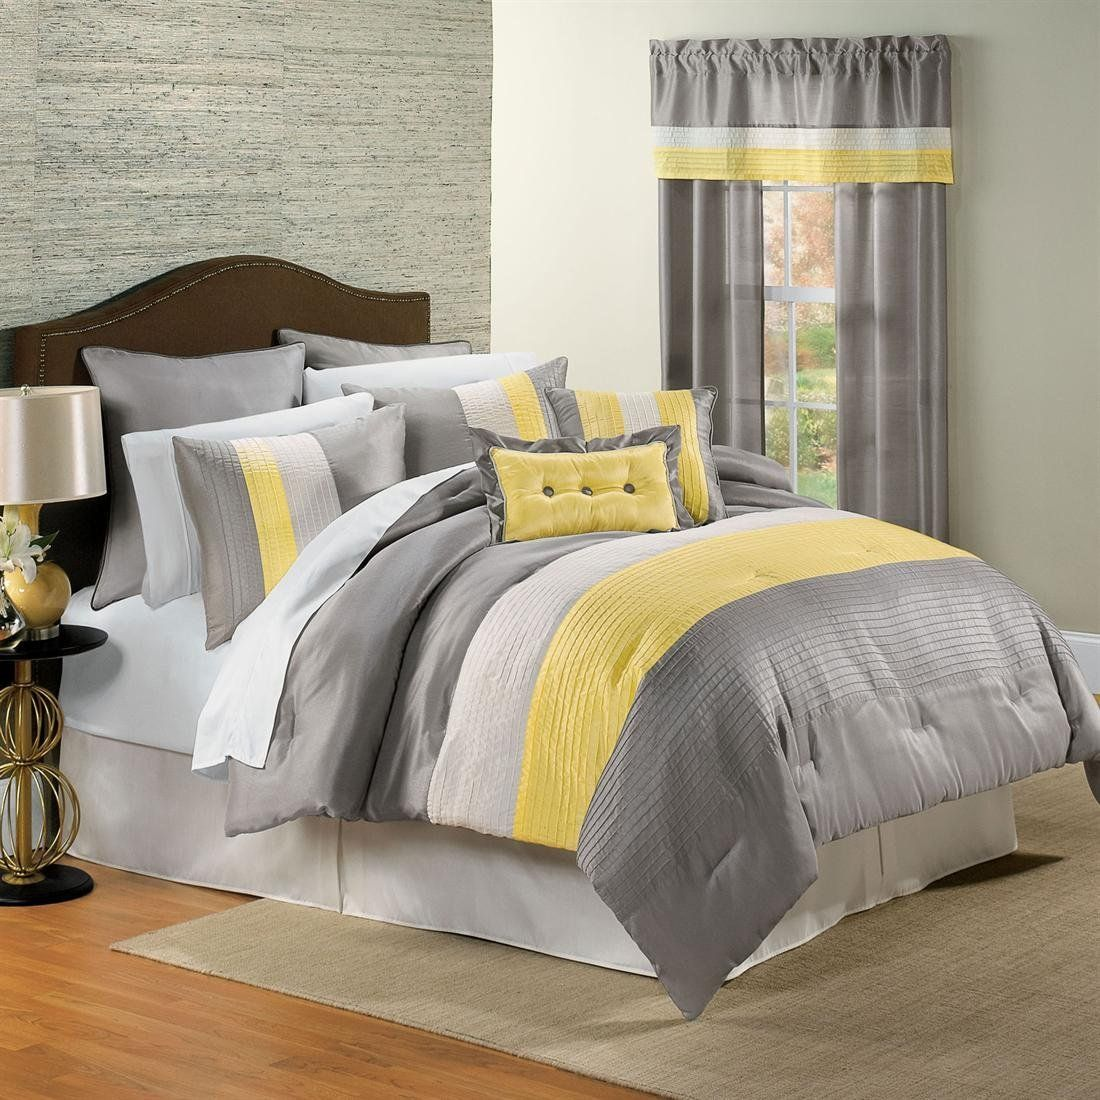 yellow and grey bedding on pinterest comforter sets grey yellow and yellow bedrooms. Black Bedroom Furniture Sets. Home Design Ideas